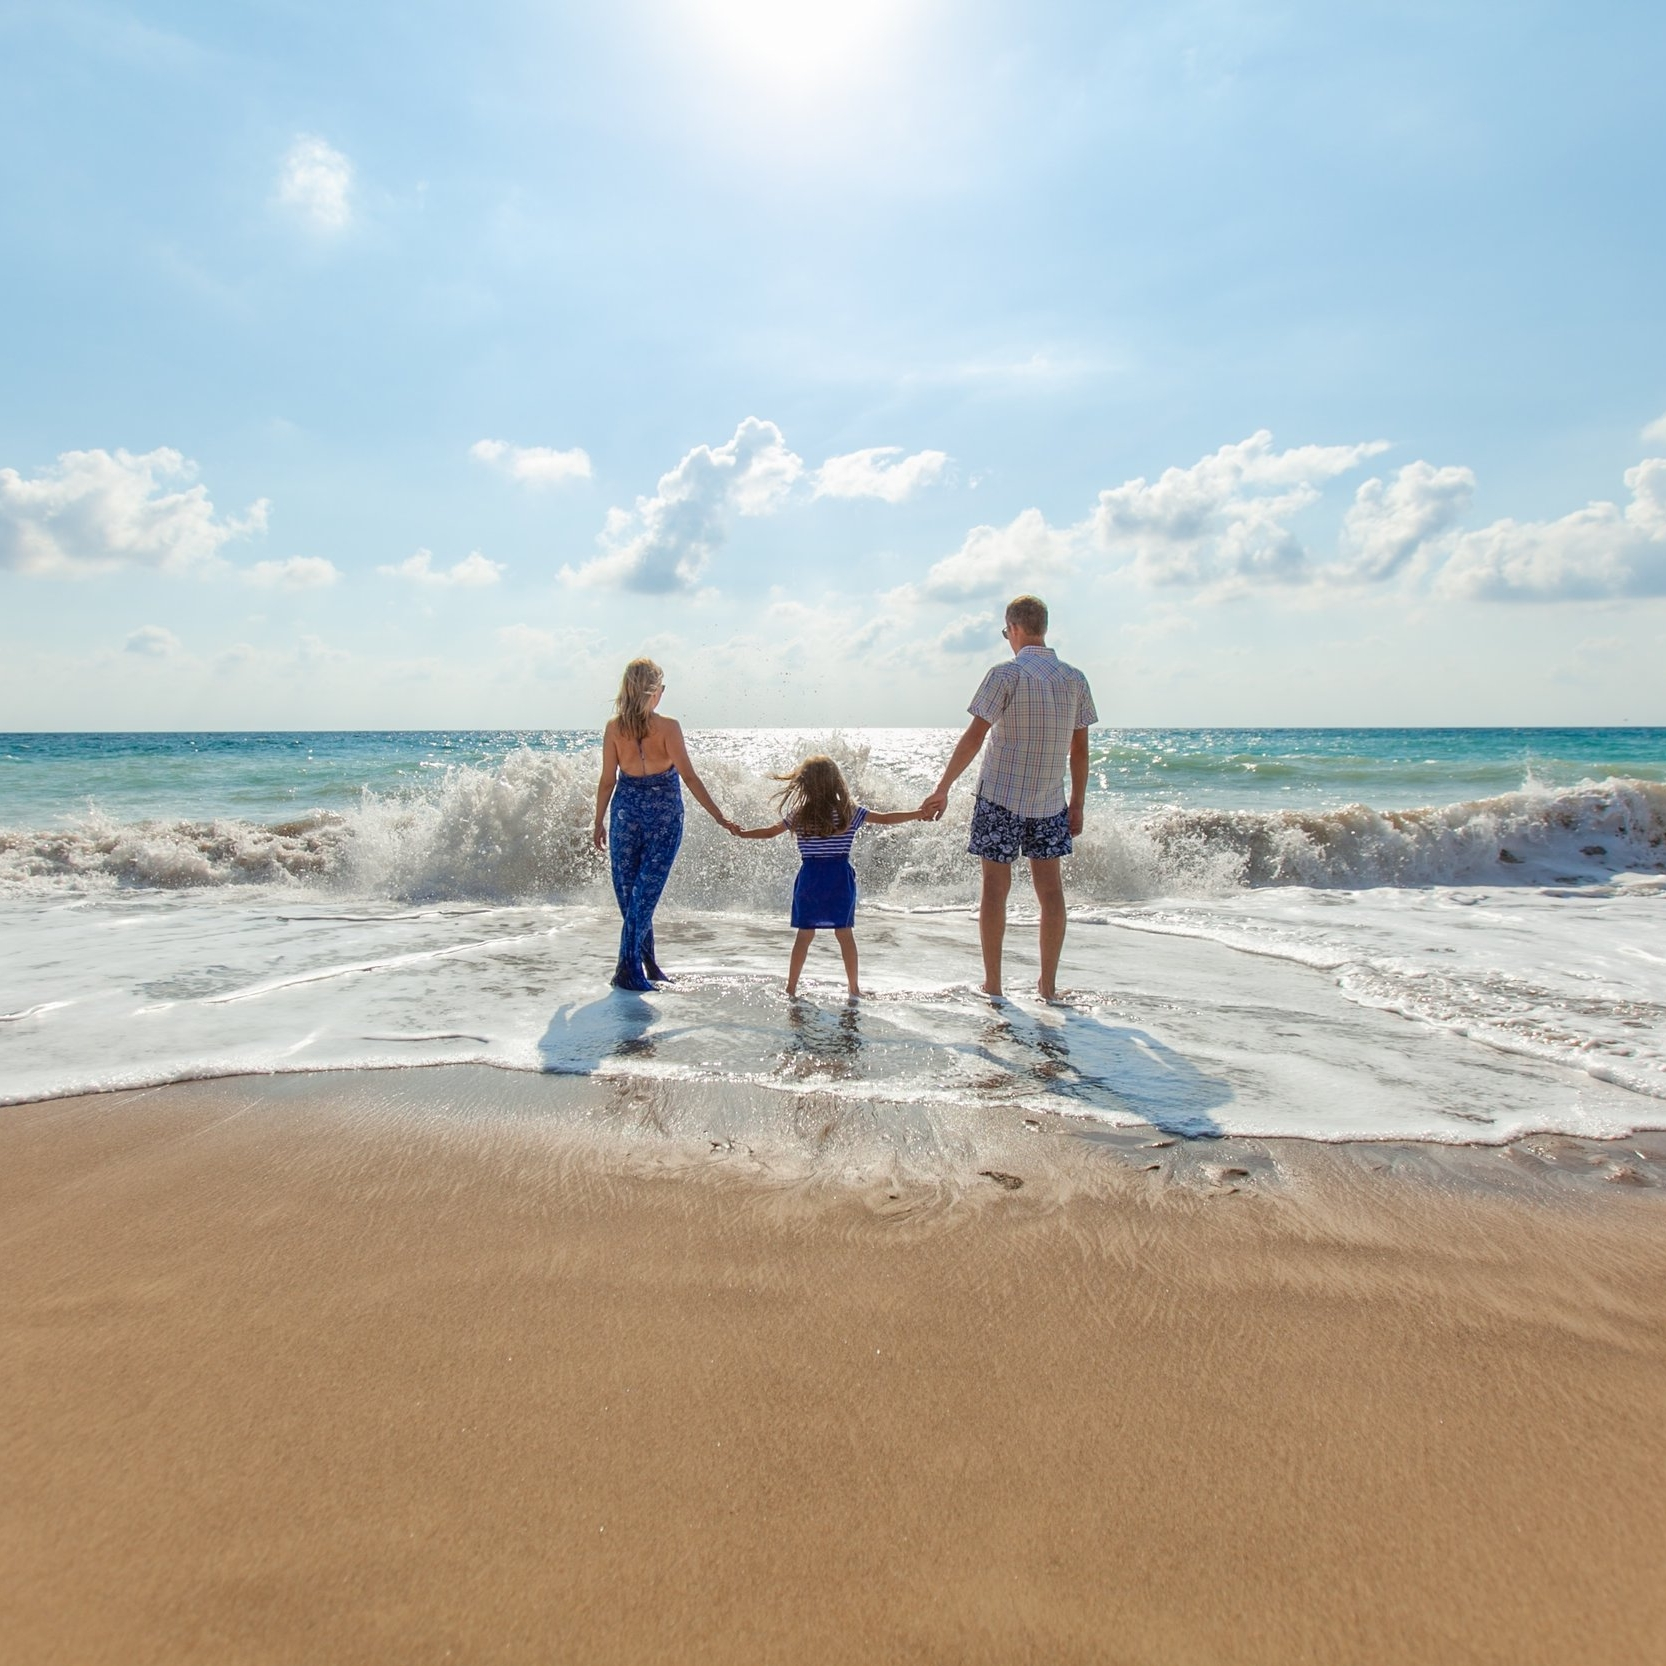 Young Family at Beach.jpg